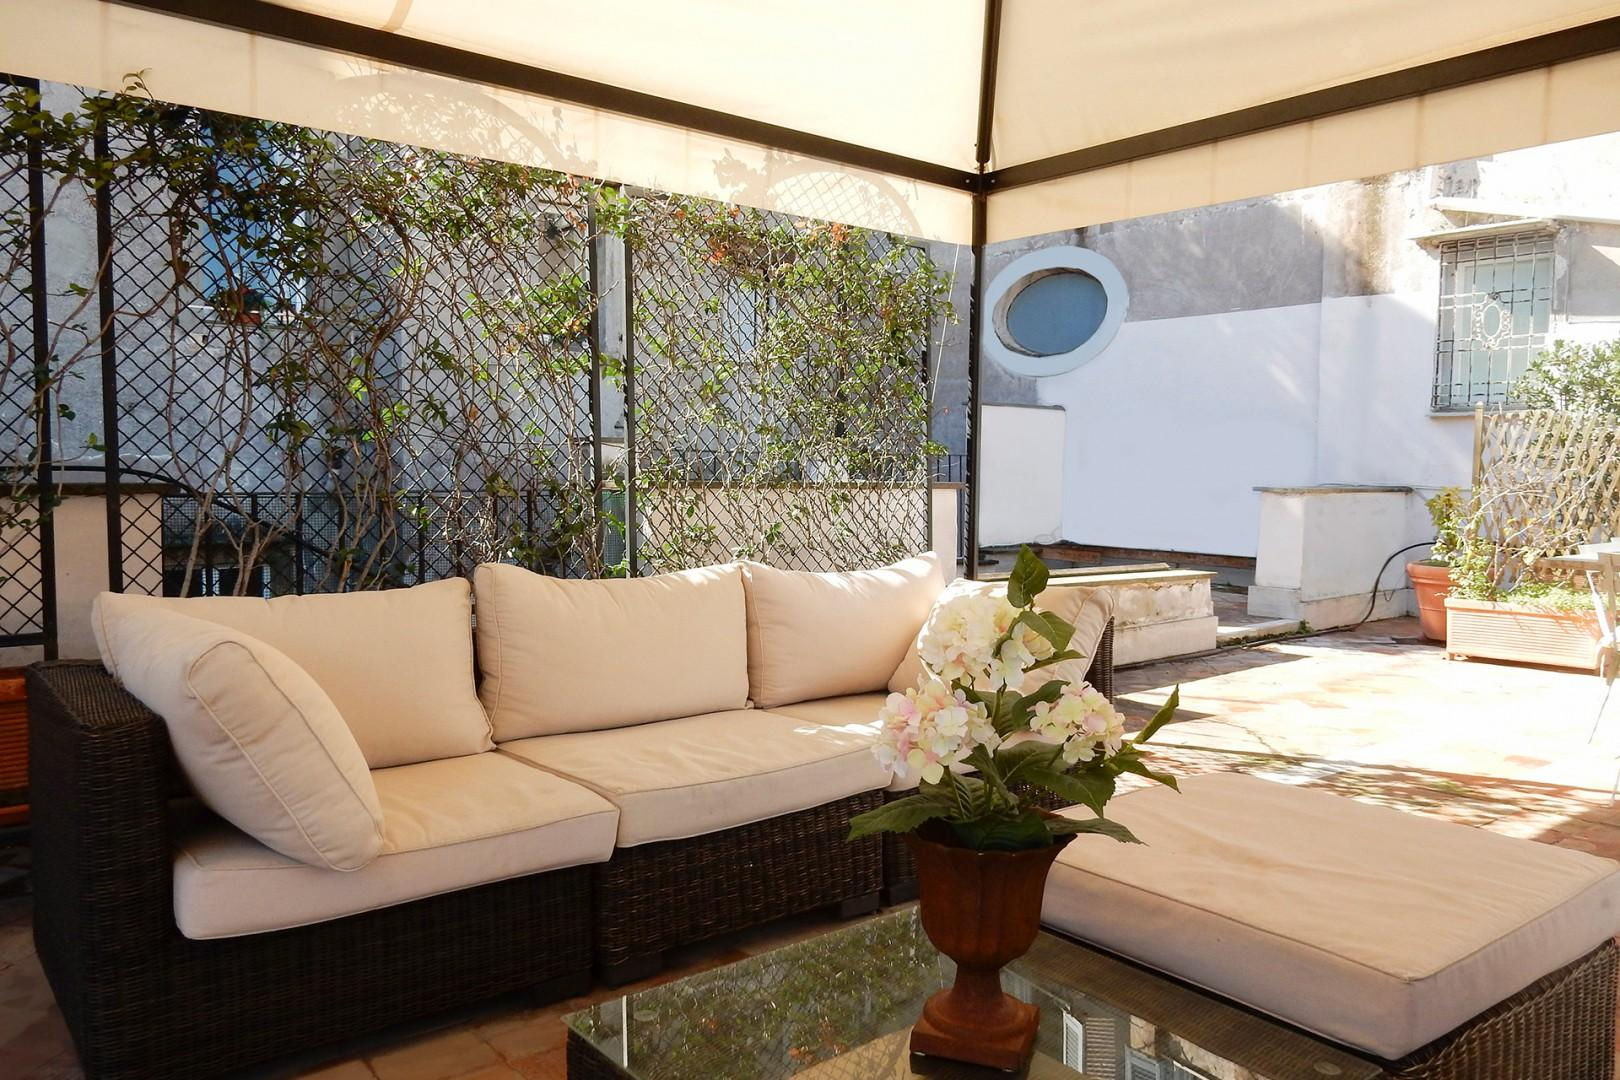 Wonderful expansive private terrace where you can enjoy views of Rome and meals, al fresco.